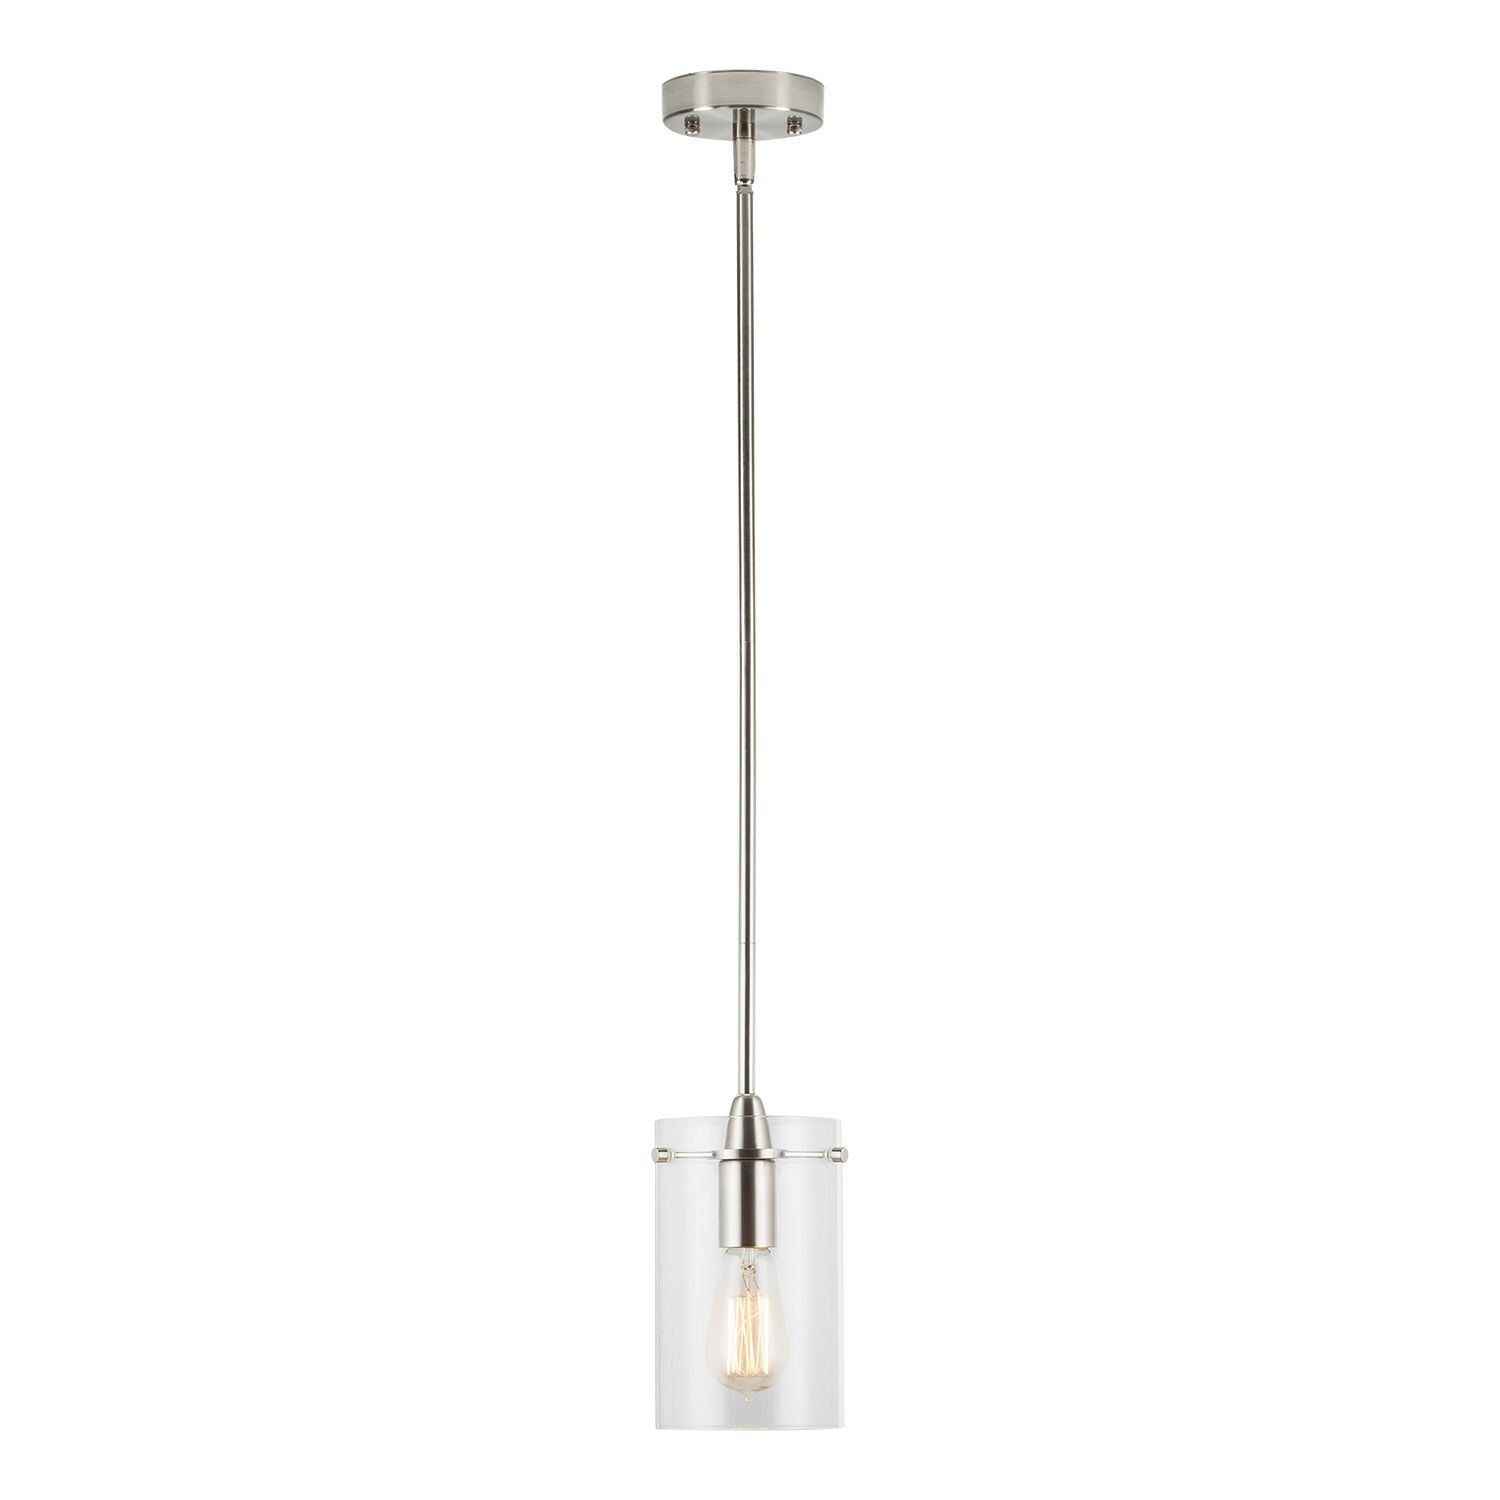 Effimero Medium Stem Hung Clear Glass Contemporary Pendant Light Brushed